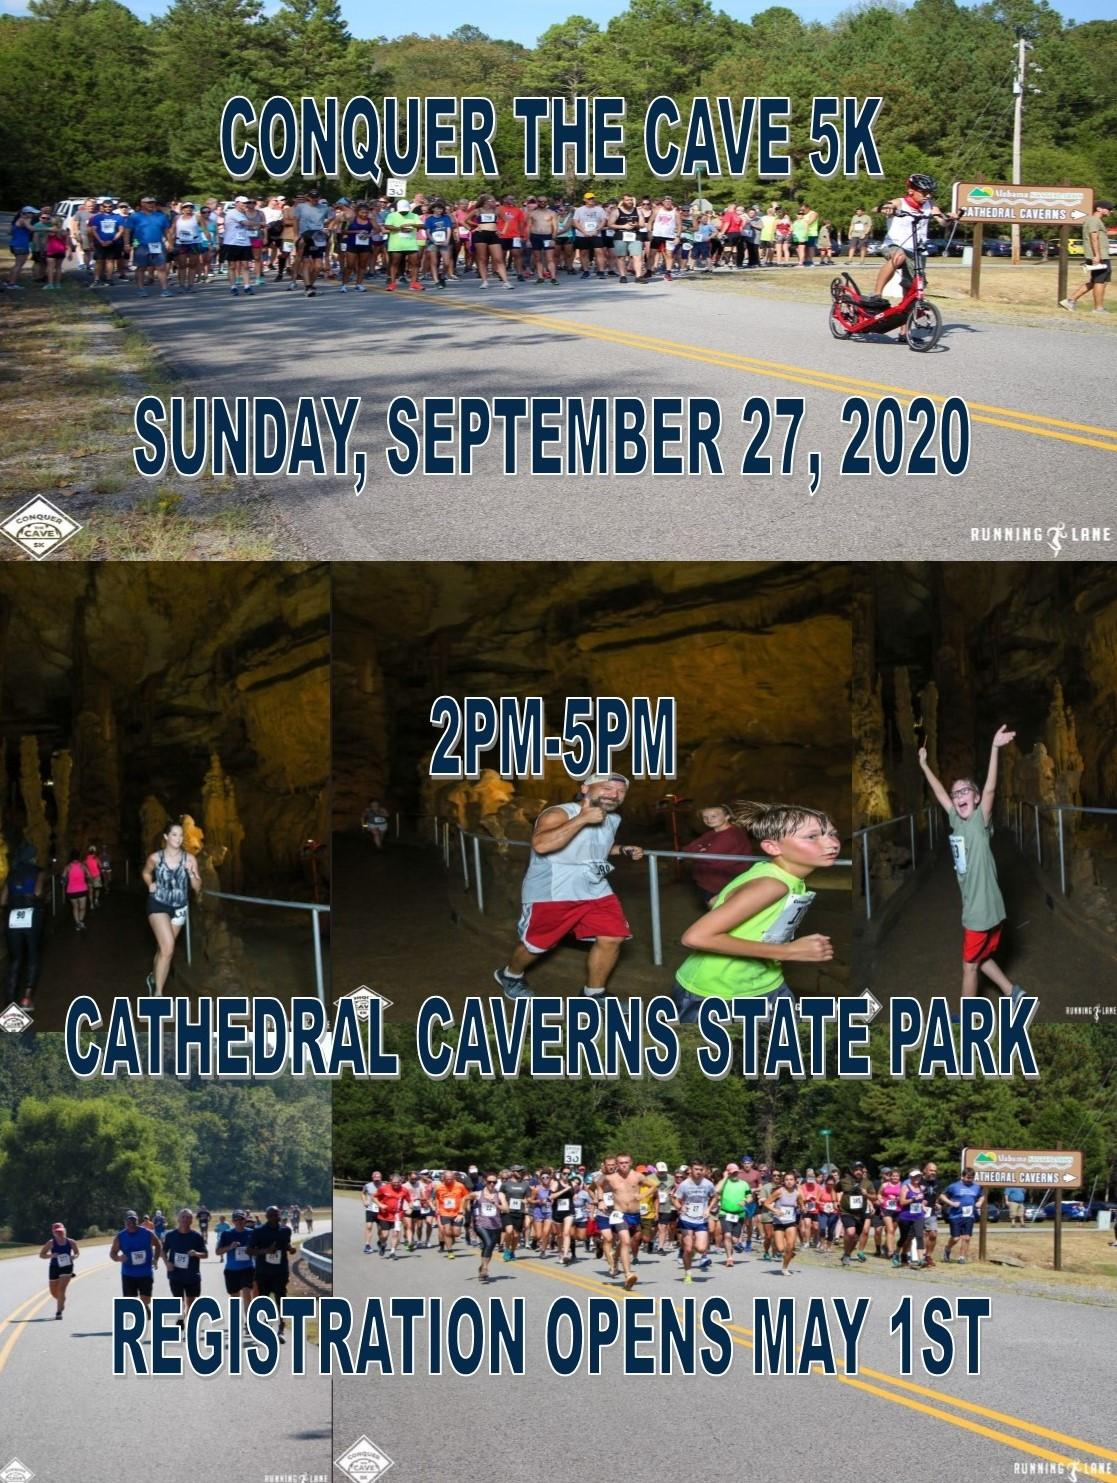 CCSP Conquer the Cave 5K Pic Flyer